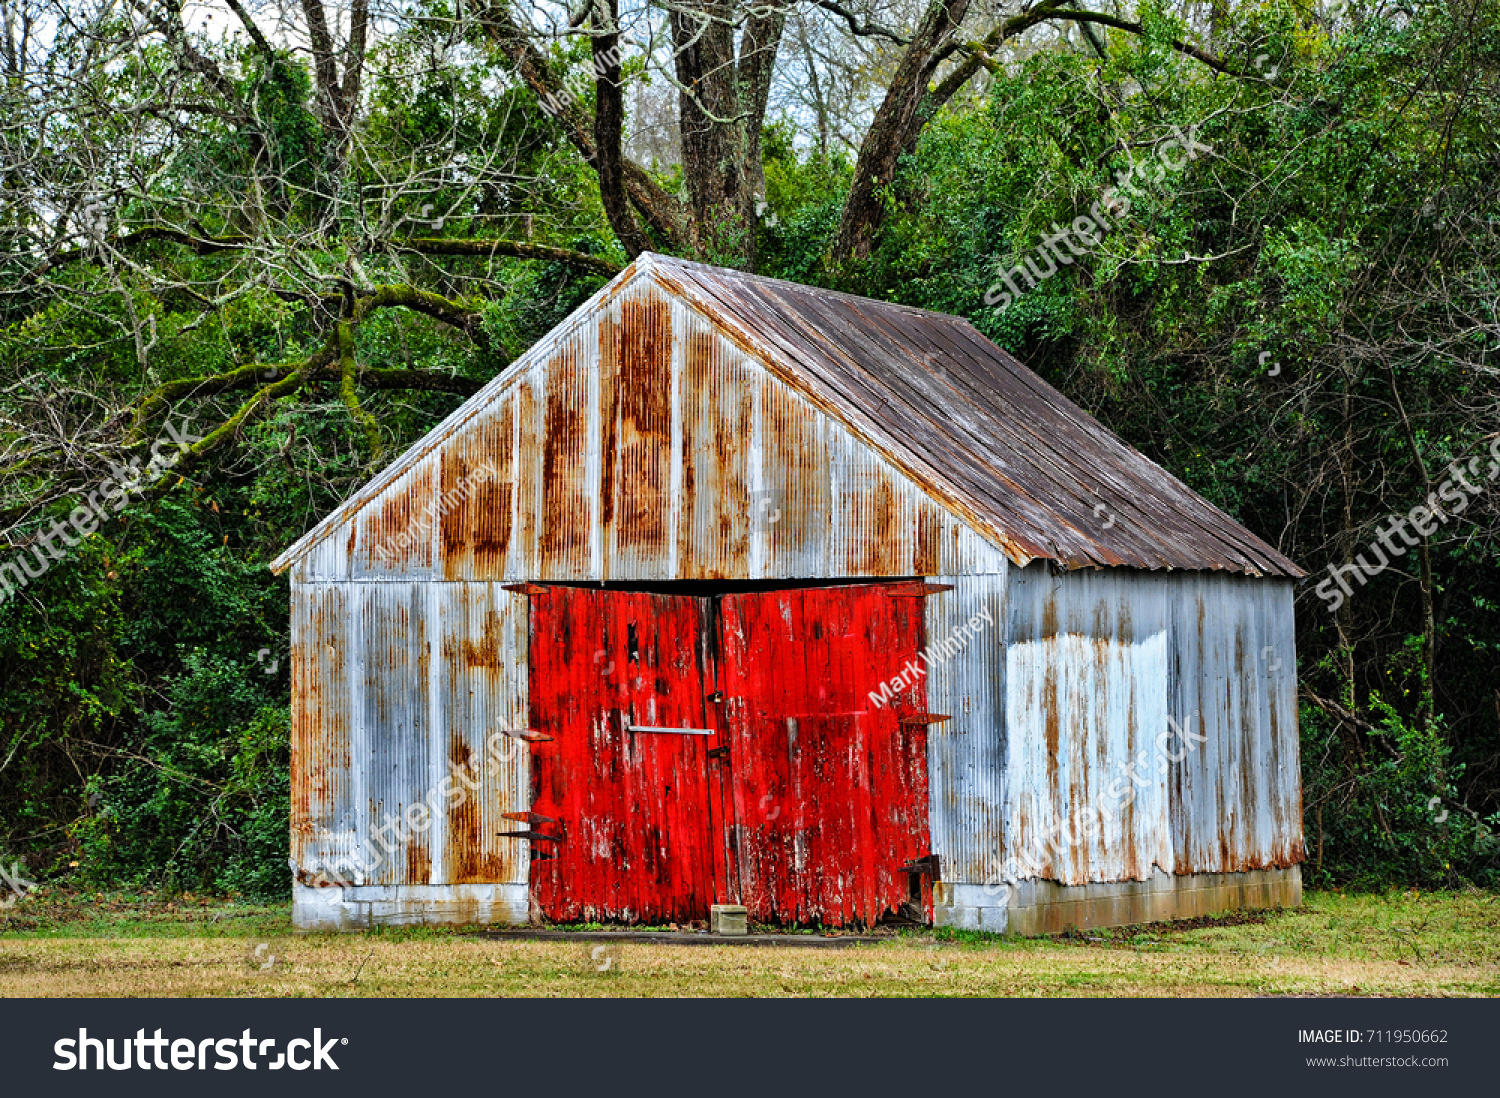 stock-photo-old-garage-building-with-wea